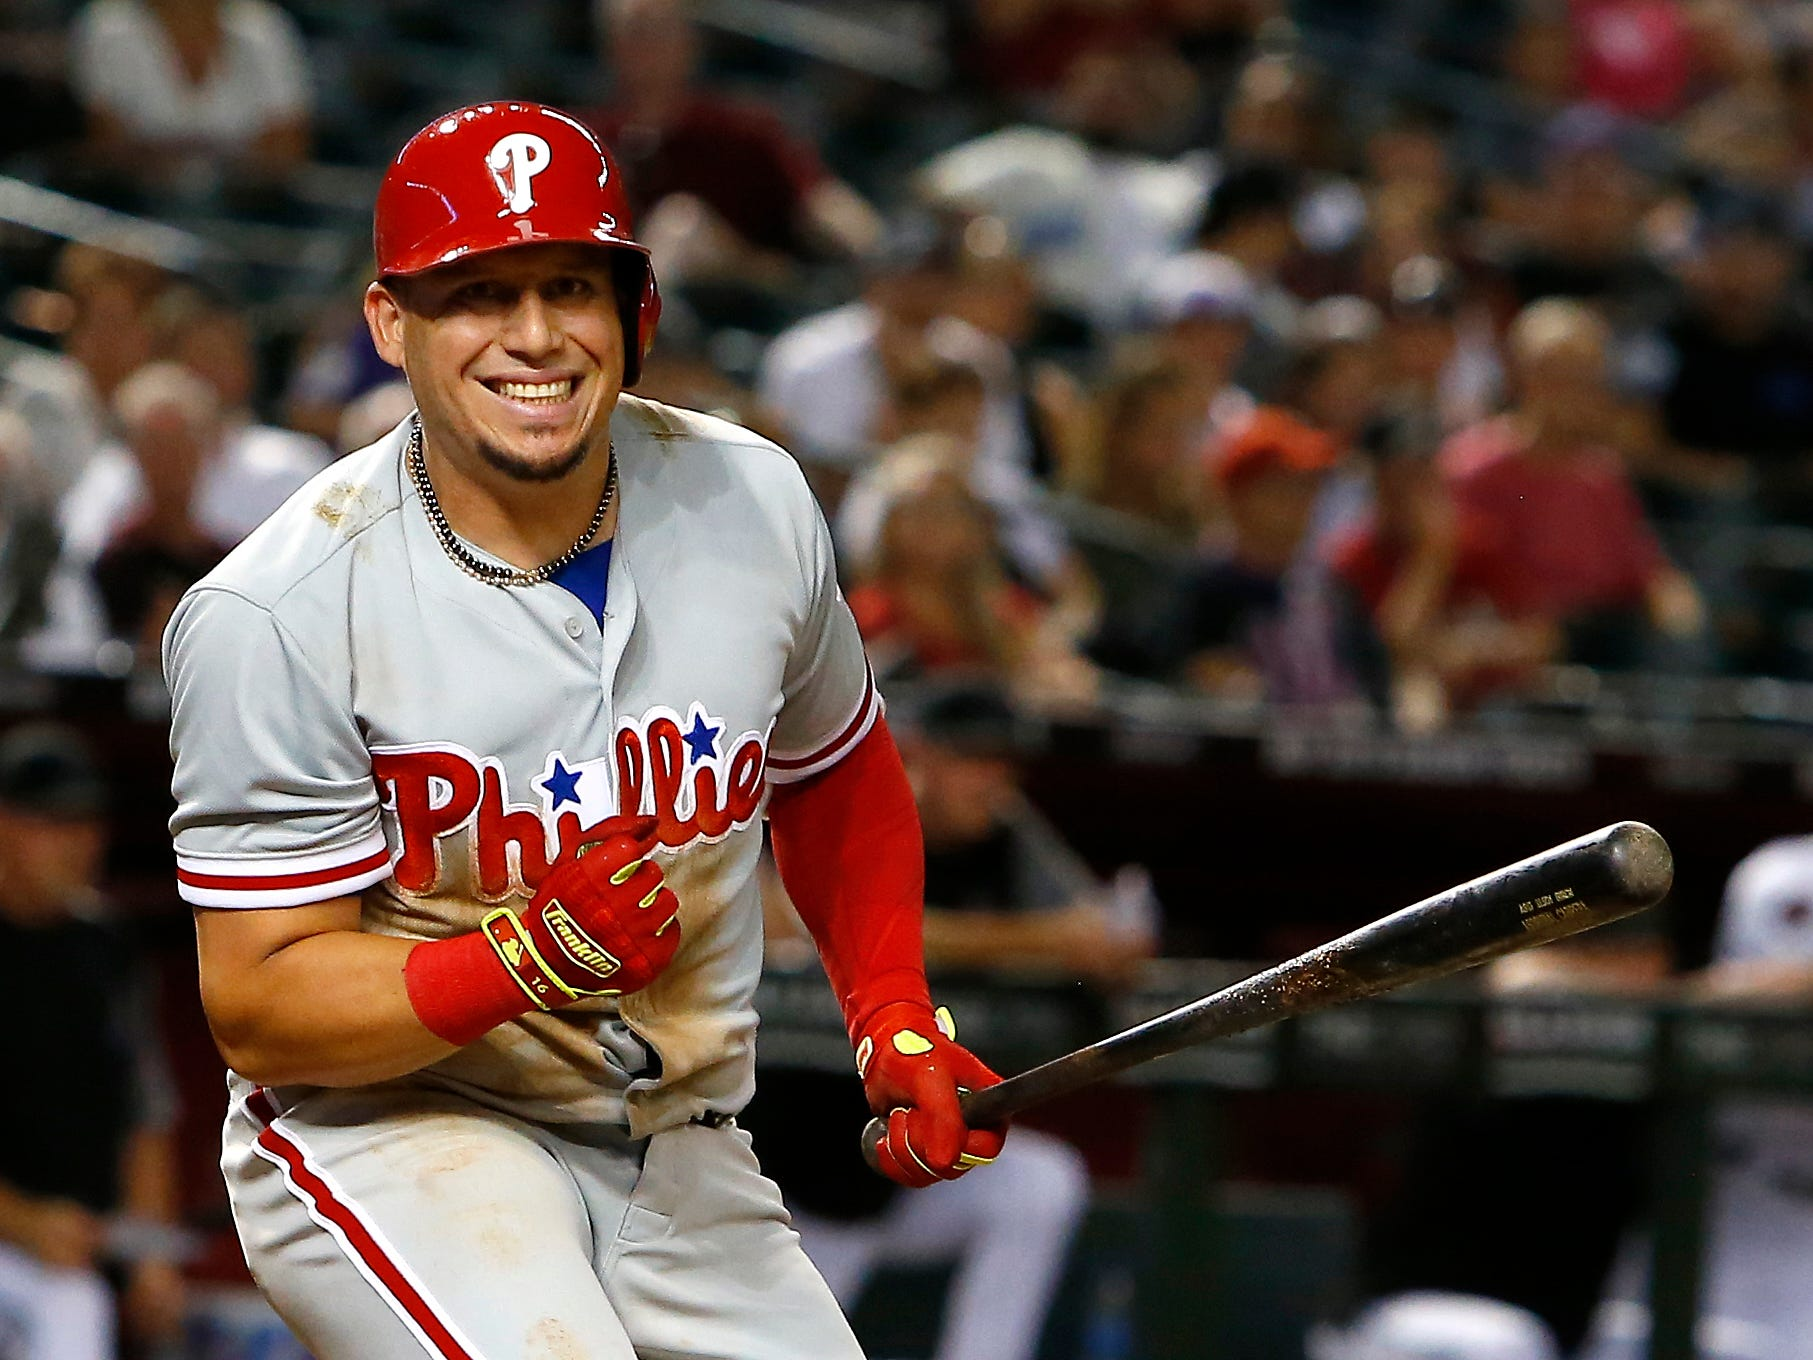 Philadelphia Phillies' Asdrubal Cabrera reacts after a swinging strike during the eighth inning of the team's baseball game against the Arizona Diamondbacks on Tuesday, Aug. 7, 2018, in Phoenix.